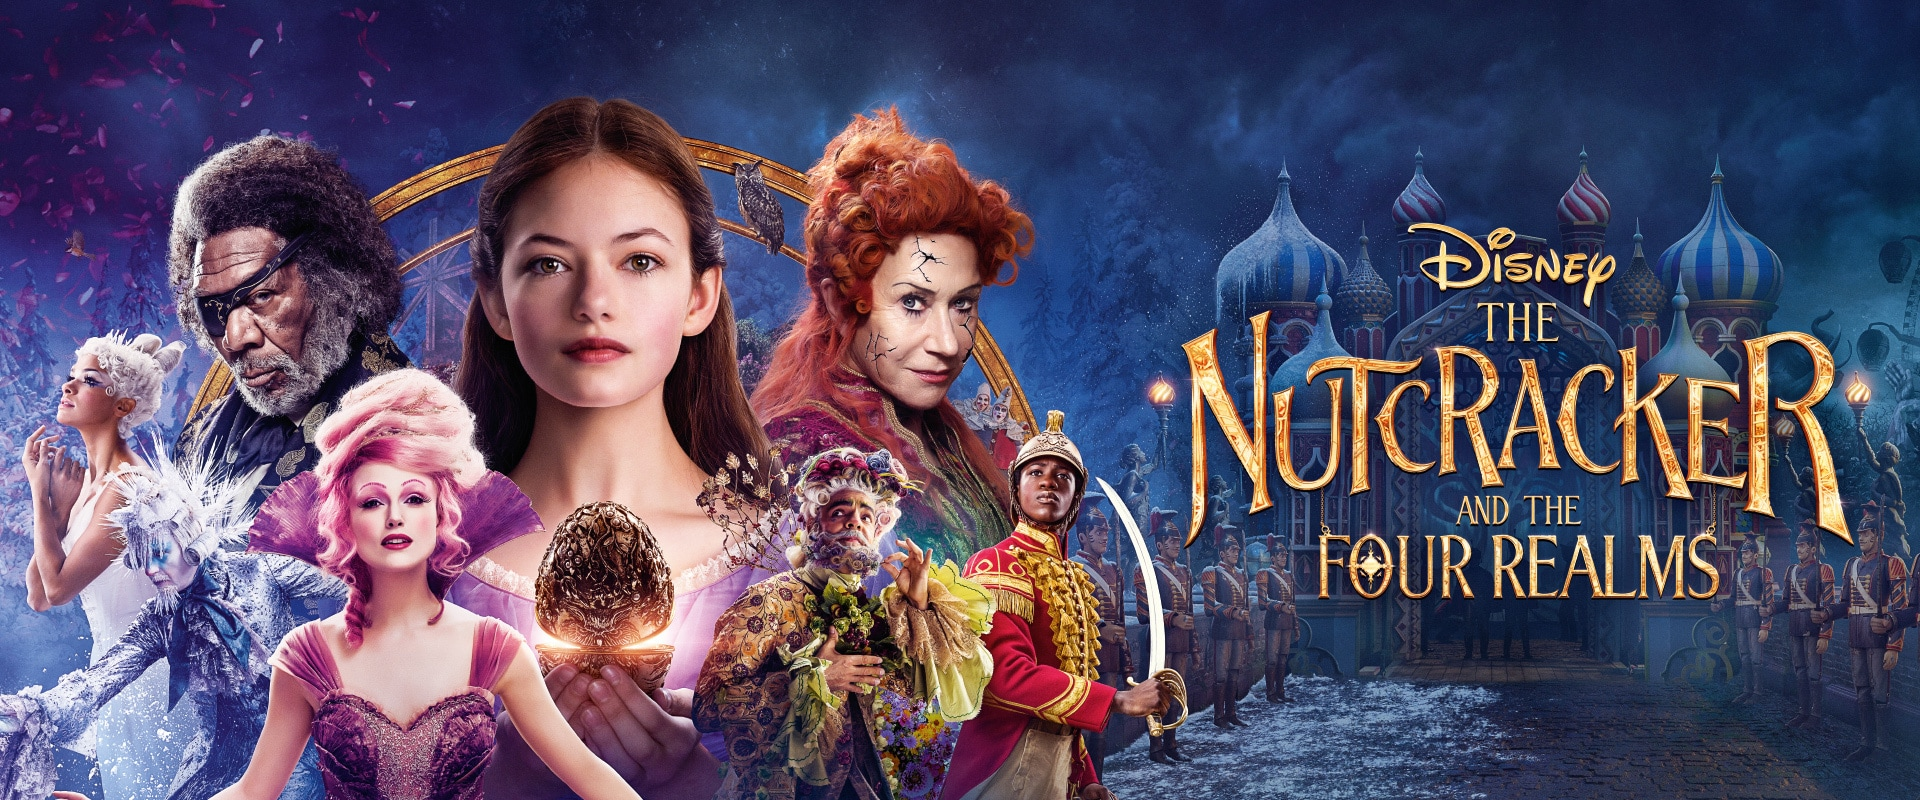 Disney's The Nutcrackers and the Four Realms | Movies | Homepage | Disney